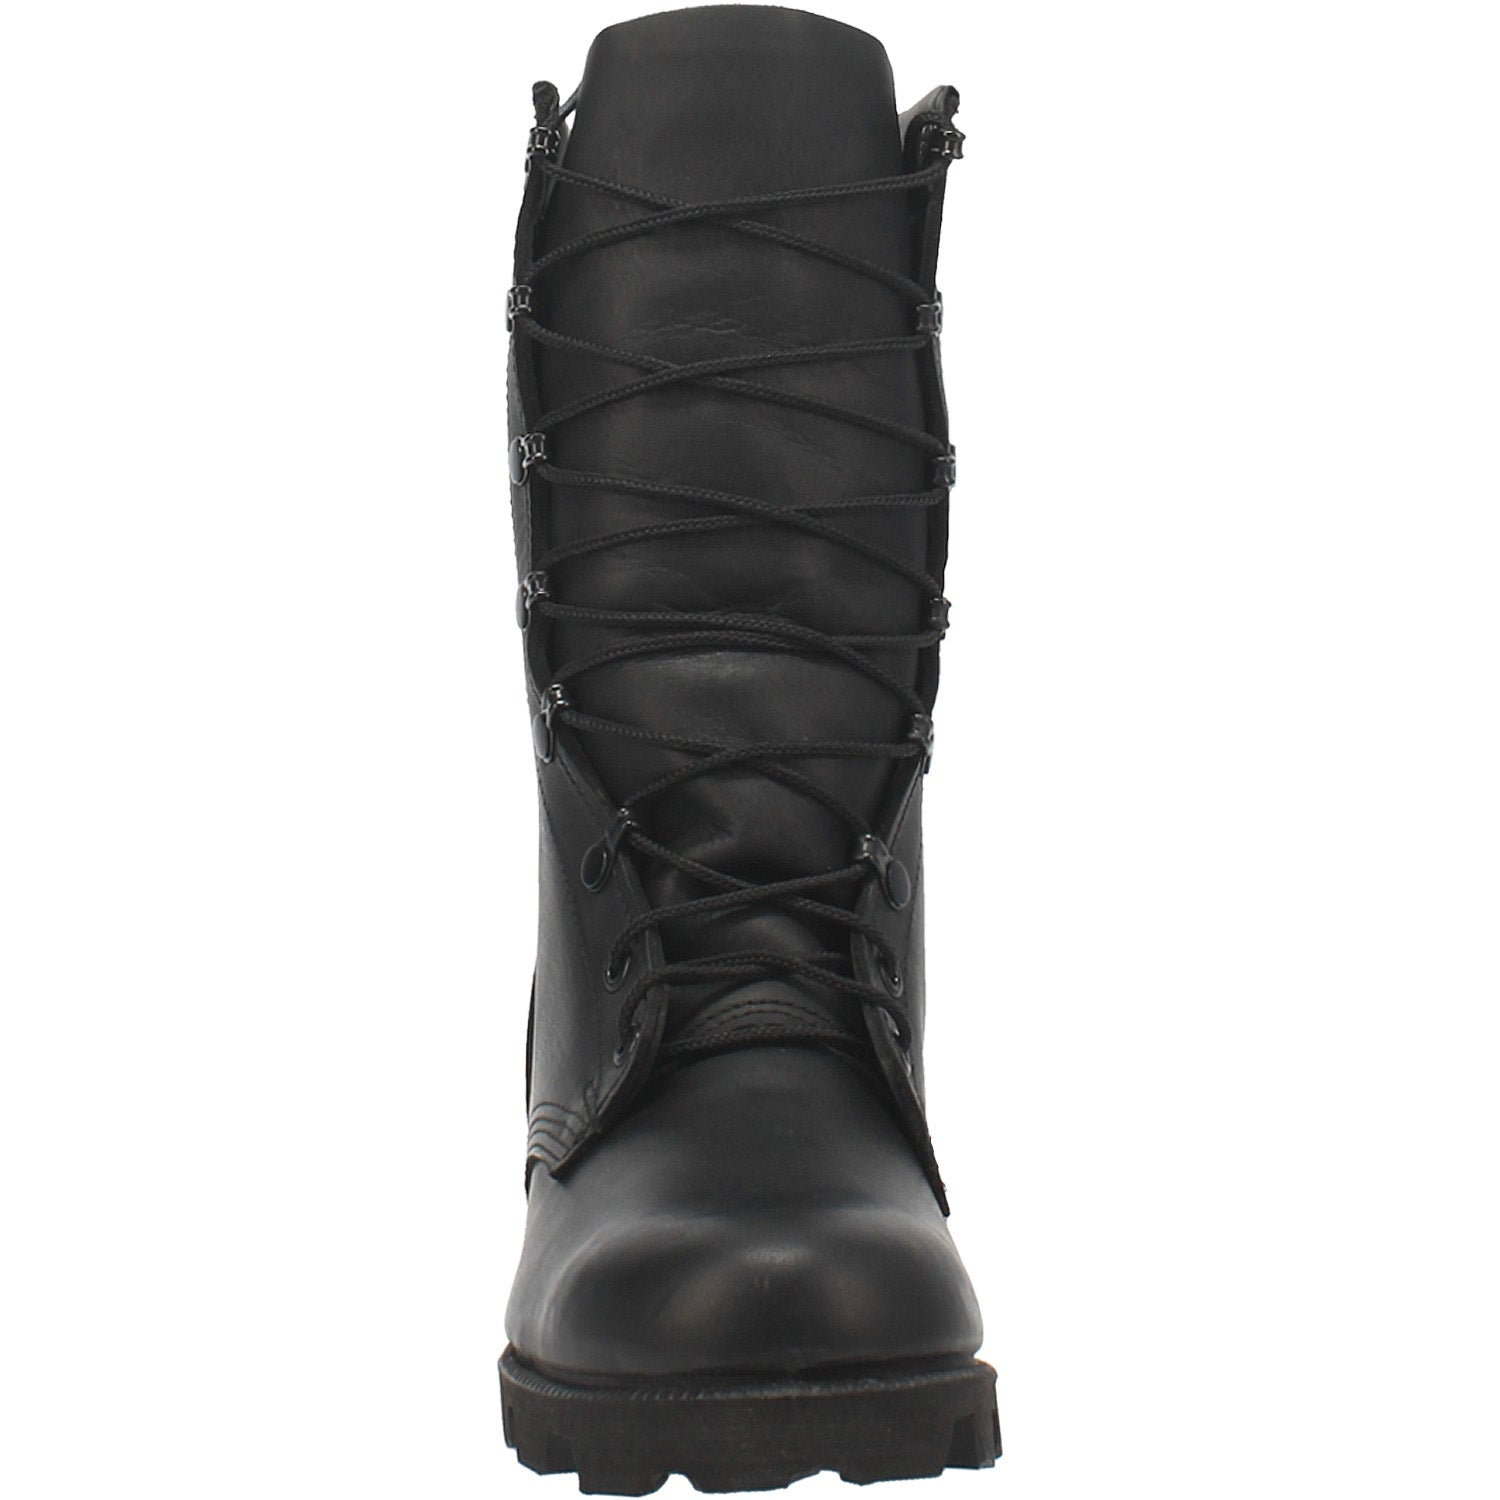 Black All-Leather Combat Boot with Panama Sole 14940722757674